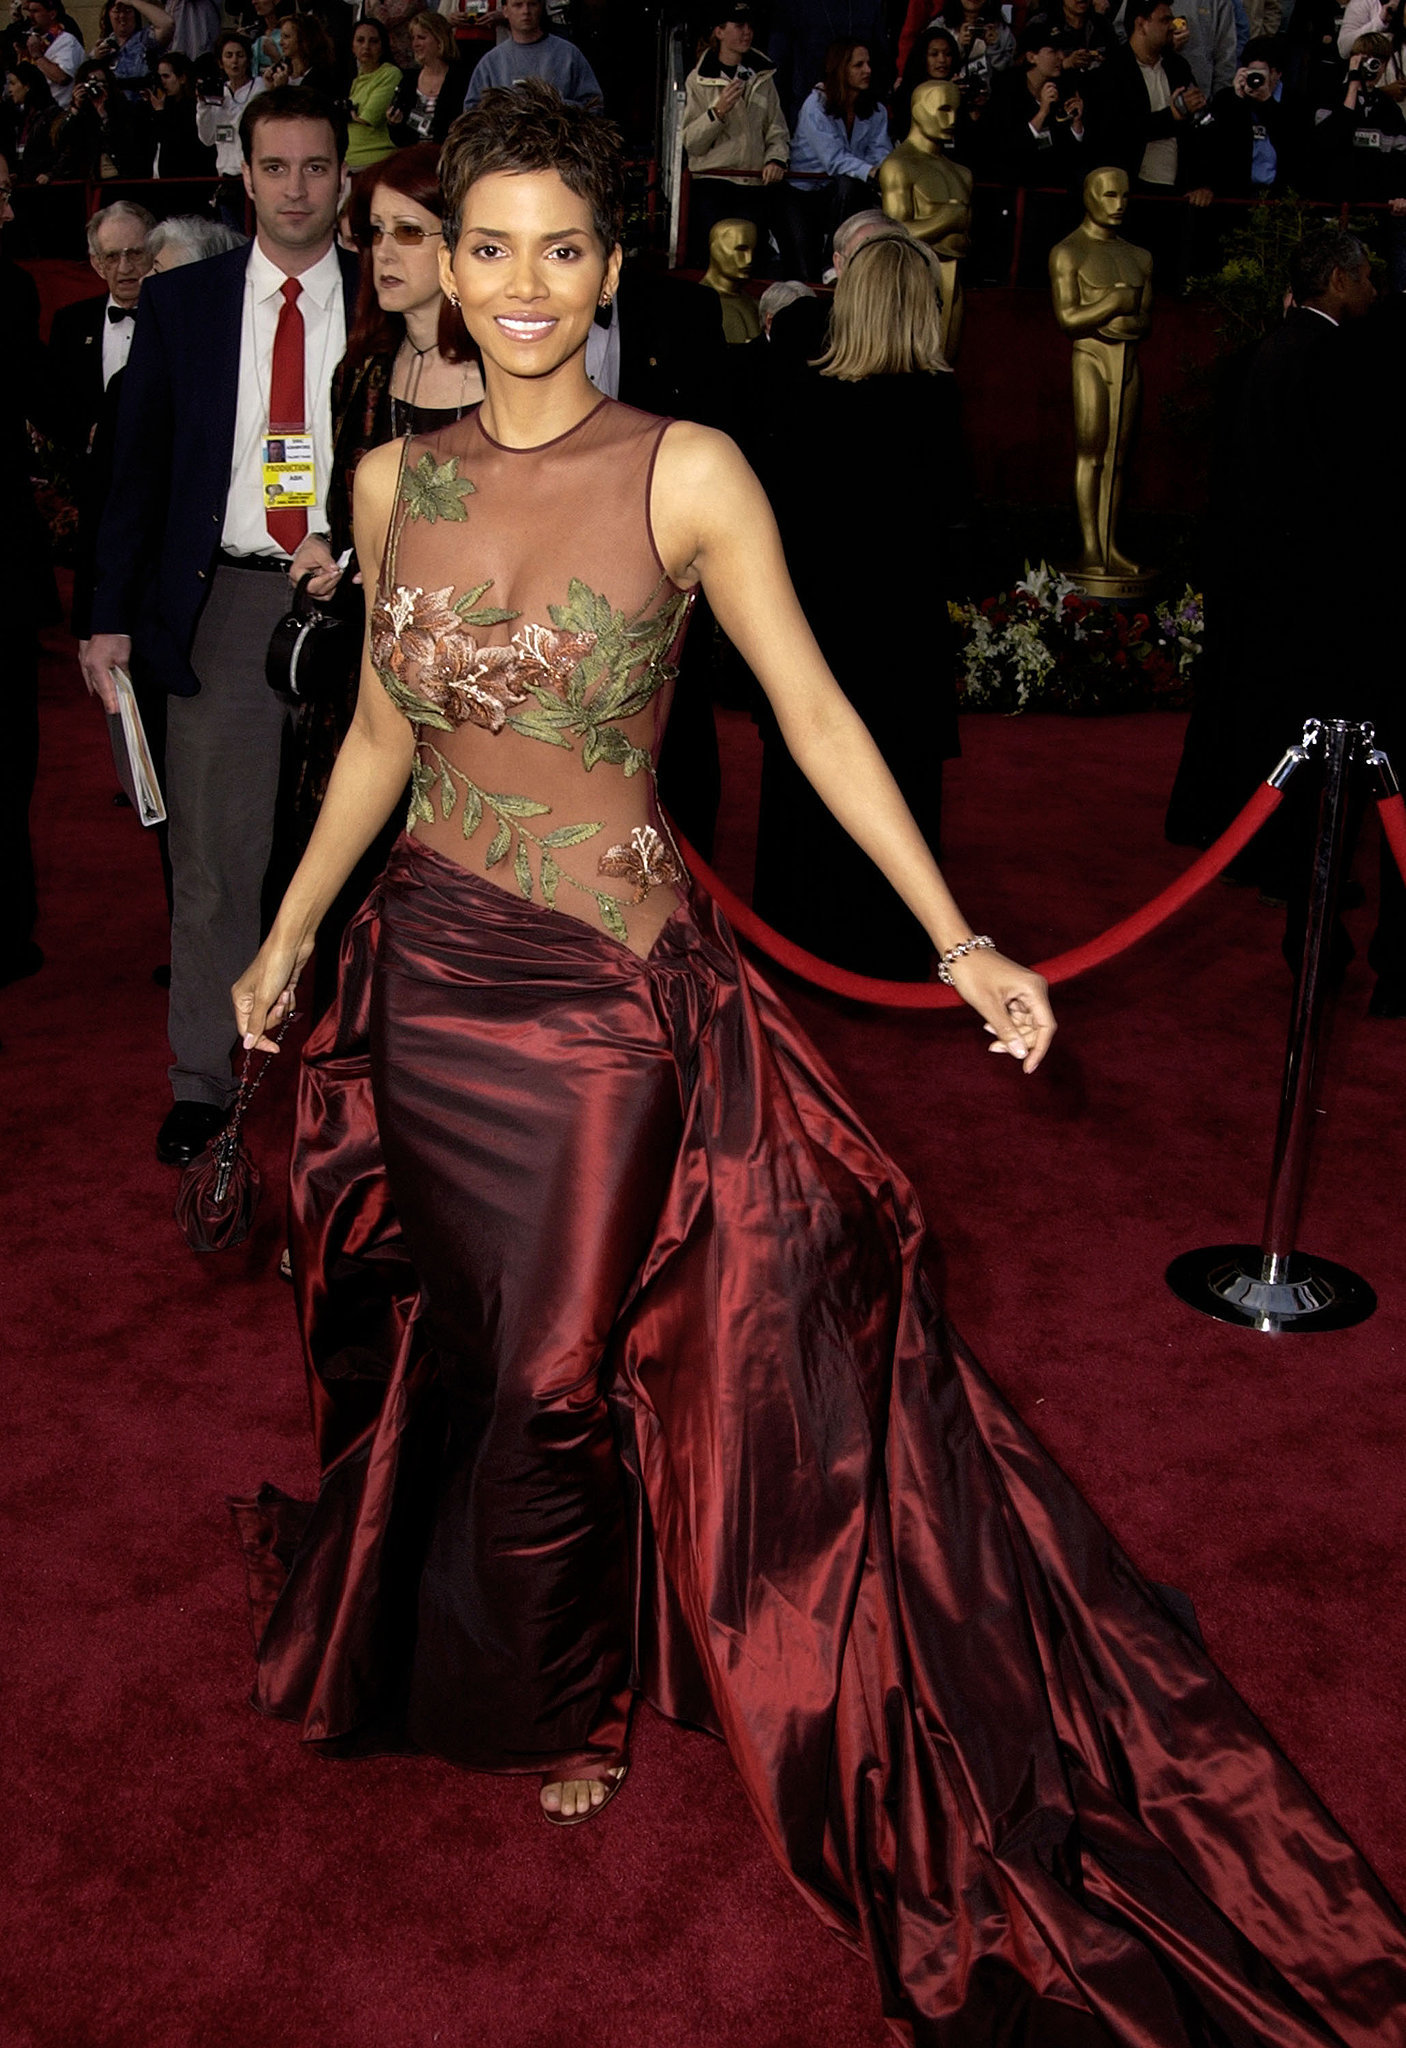 Halle Berry at the 2002 Academy Awards